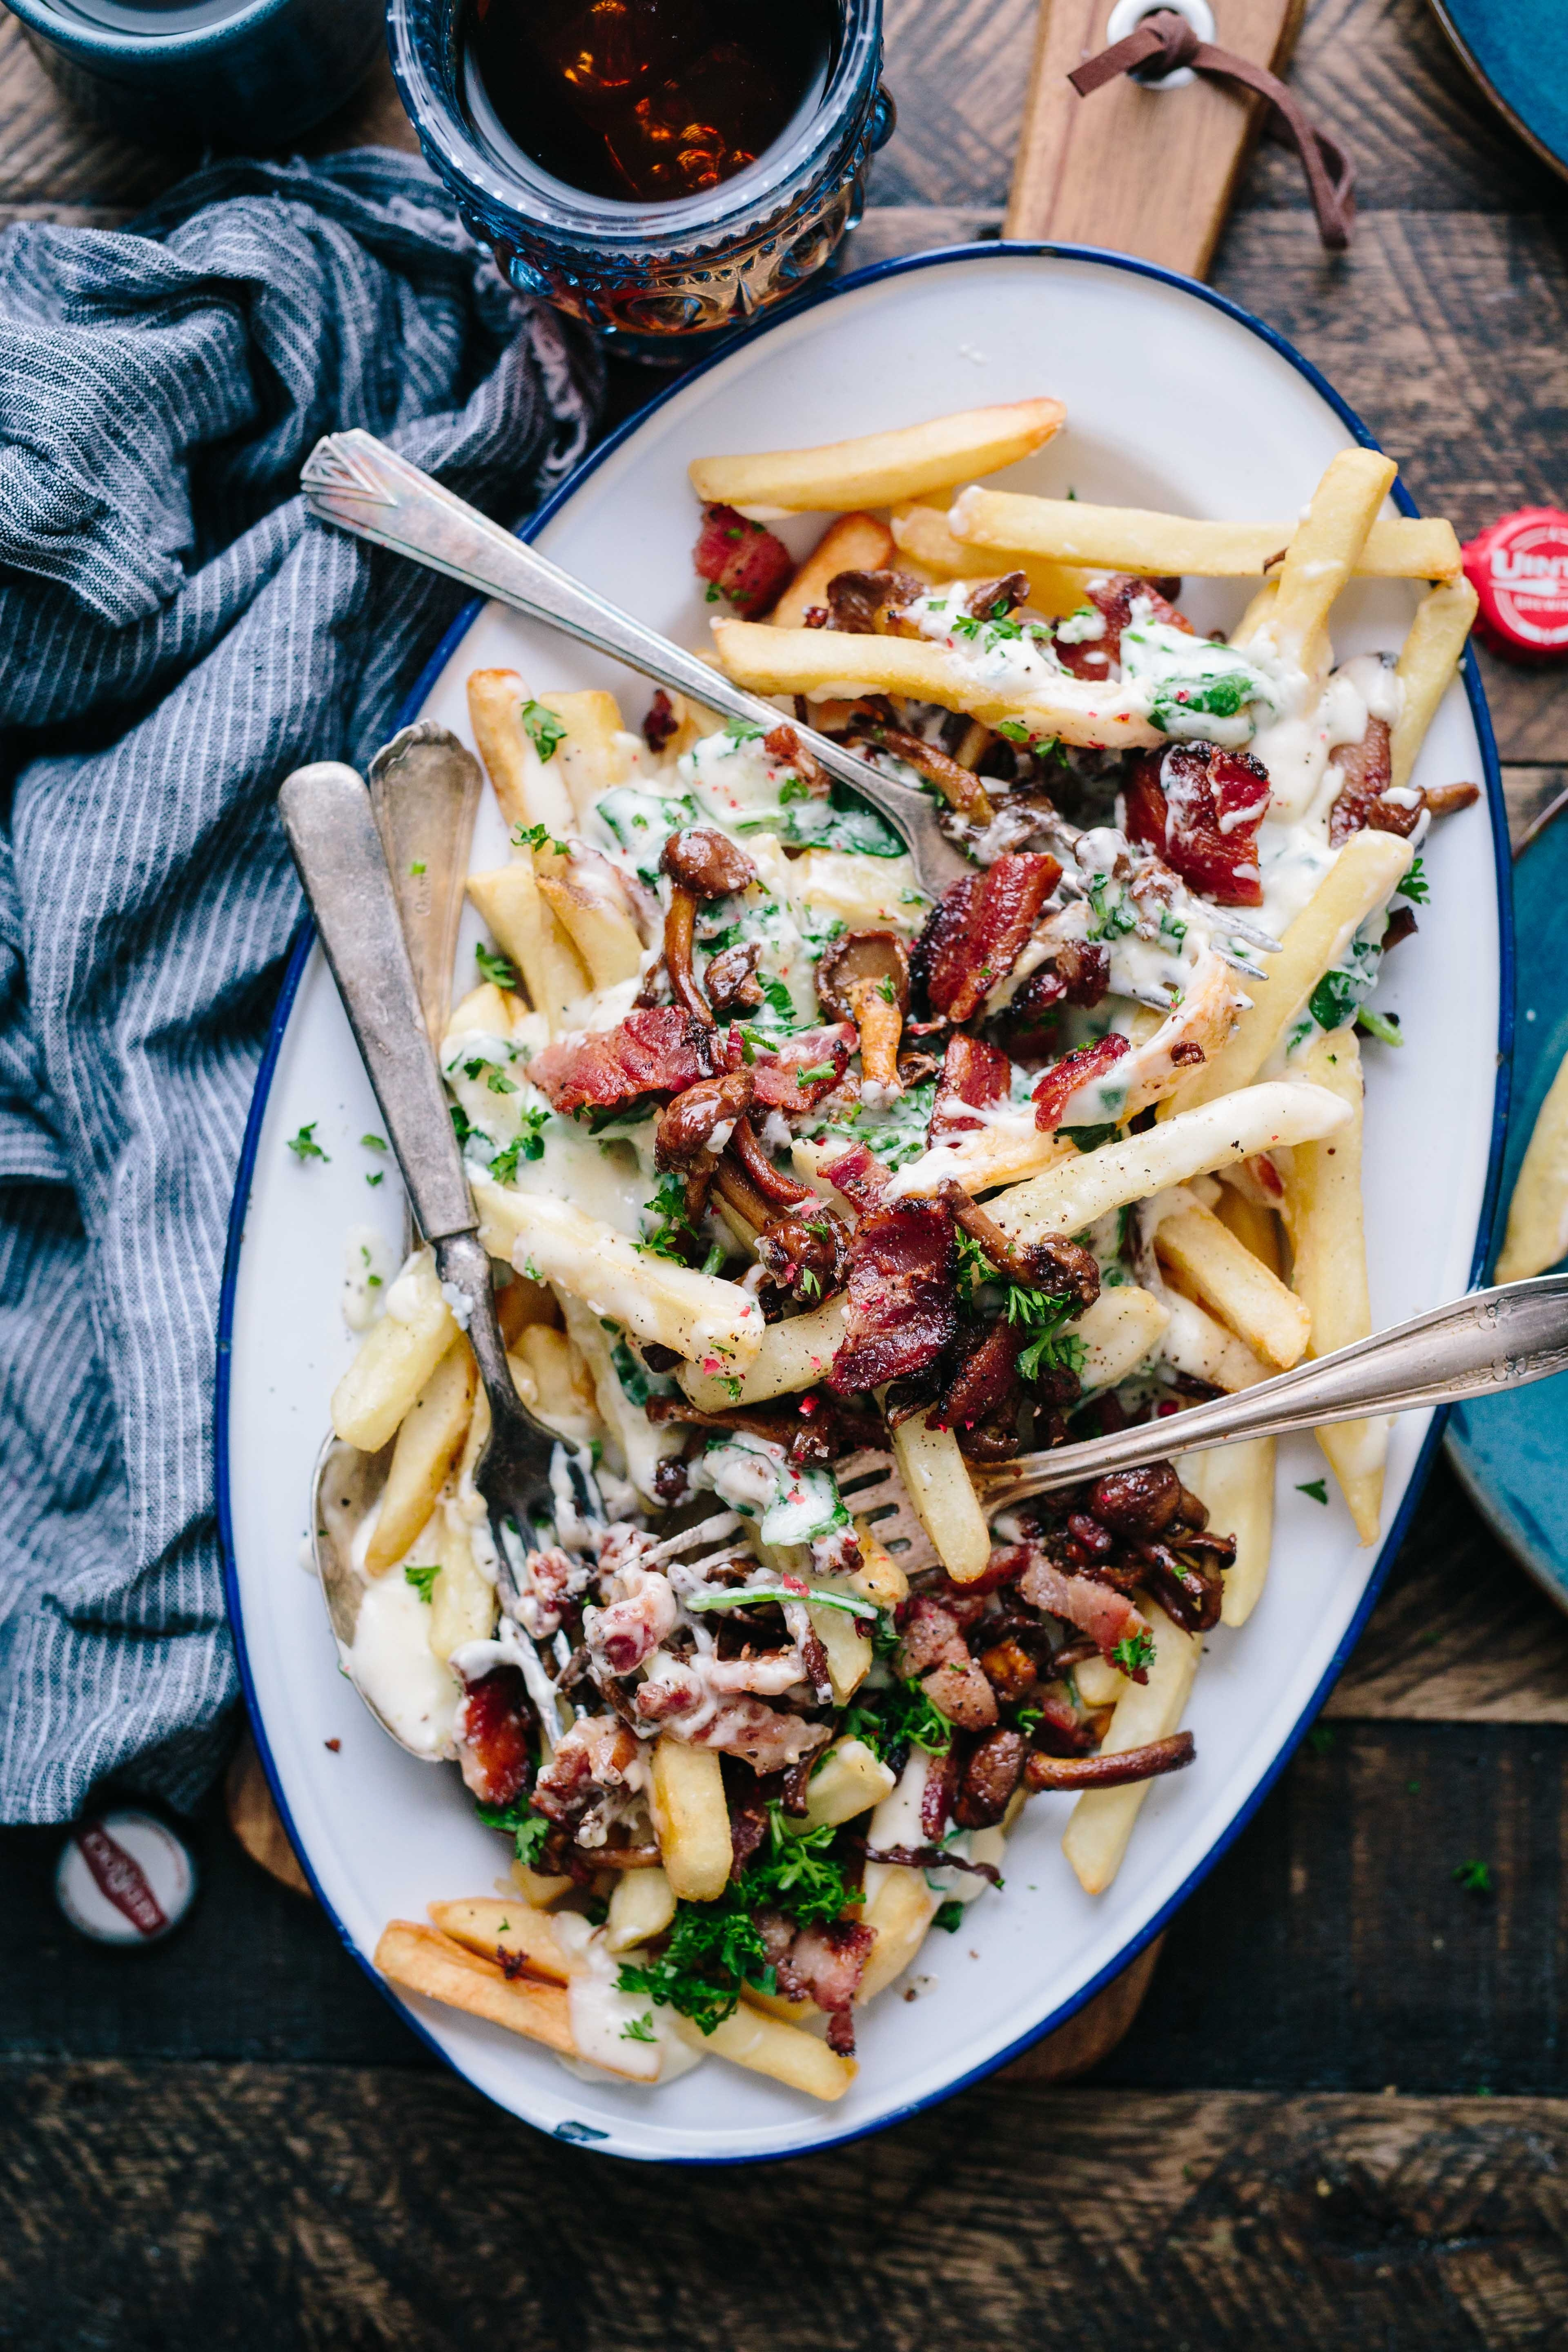 Image of poutine in Canada, a favorite Canadian dish